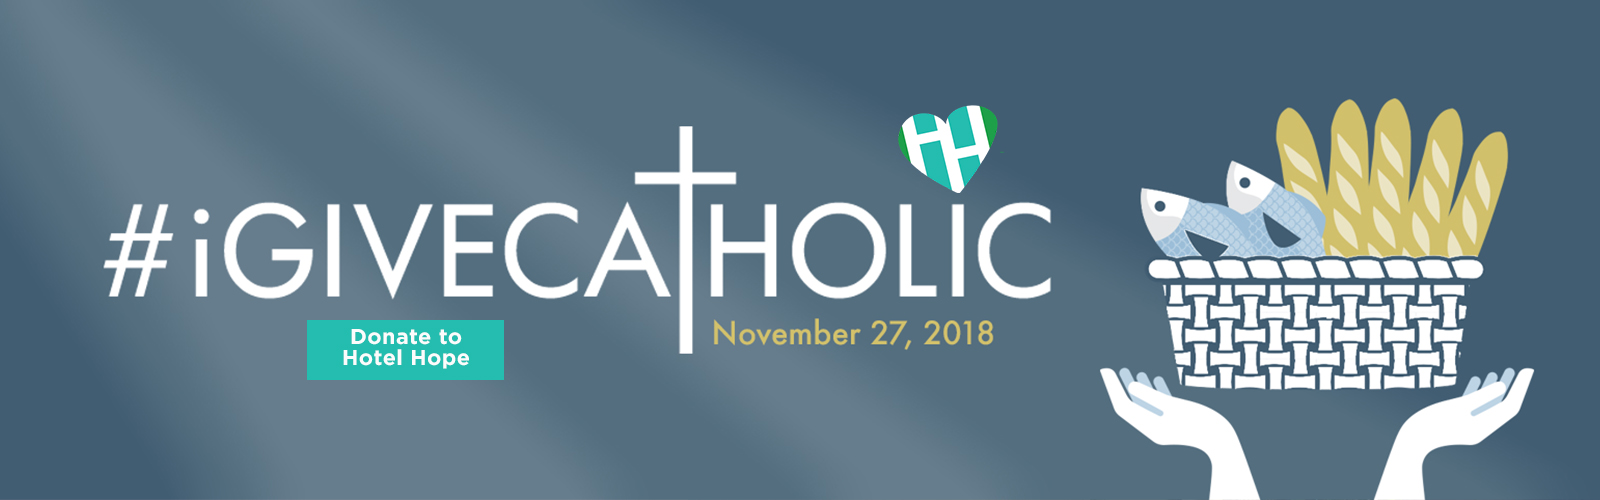 I-Give-Catholic-home-page-graphic